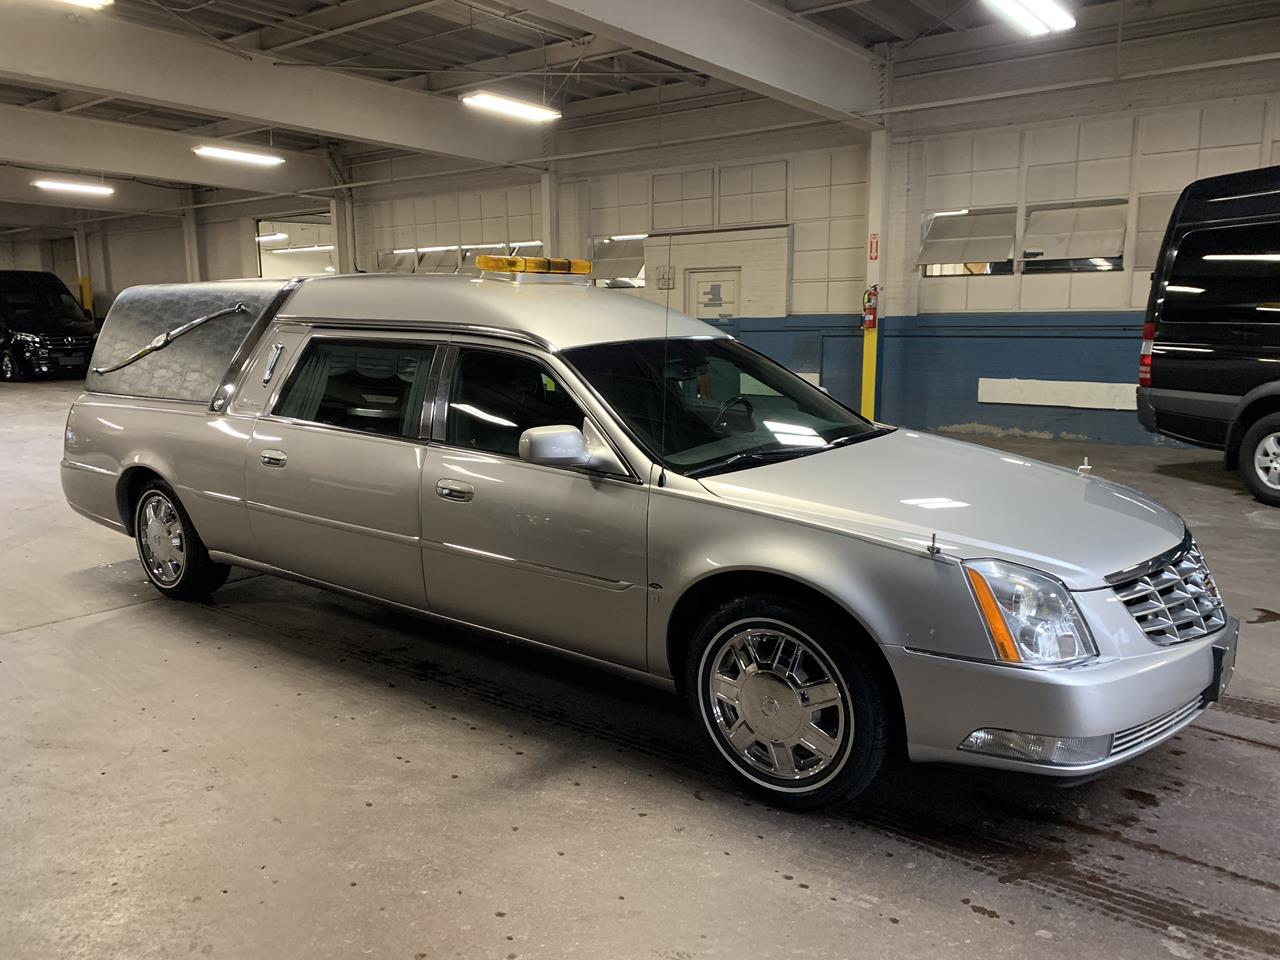 2006 Cadillac Eagle Kingsley Hearse 900 6